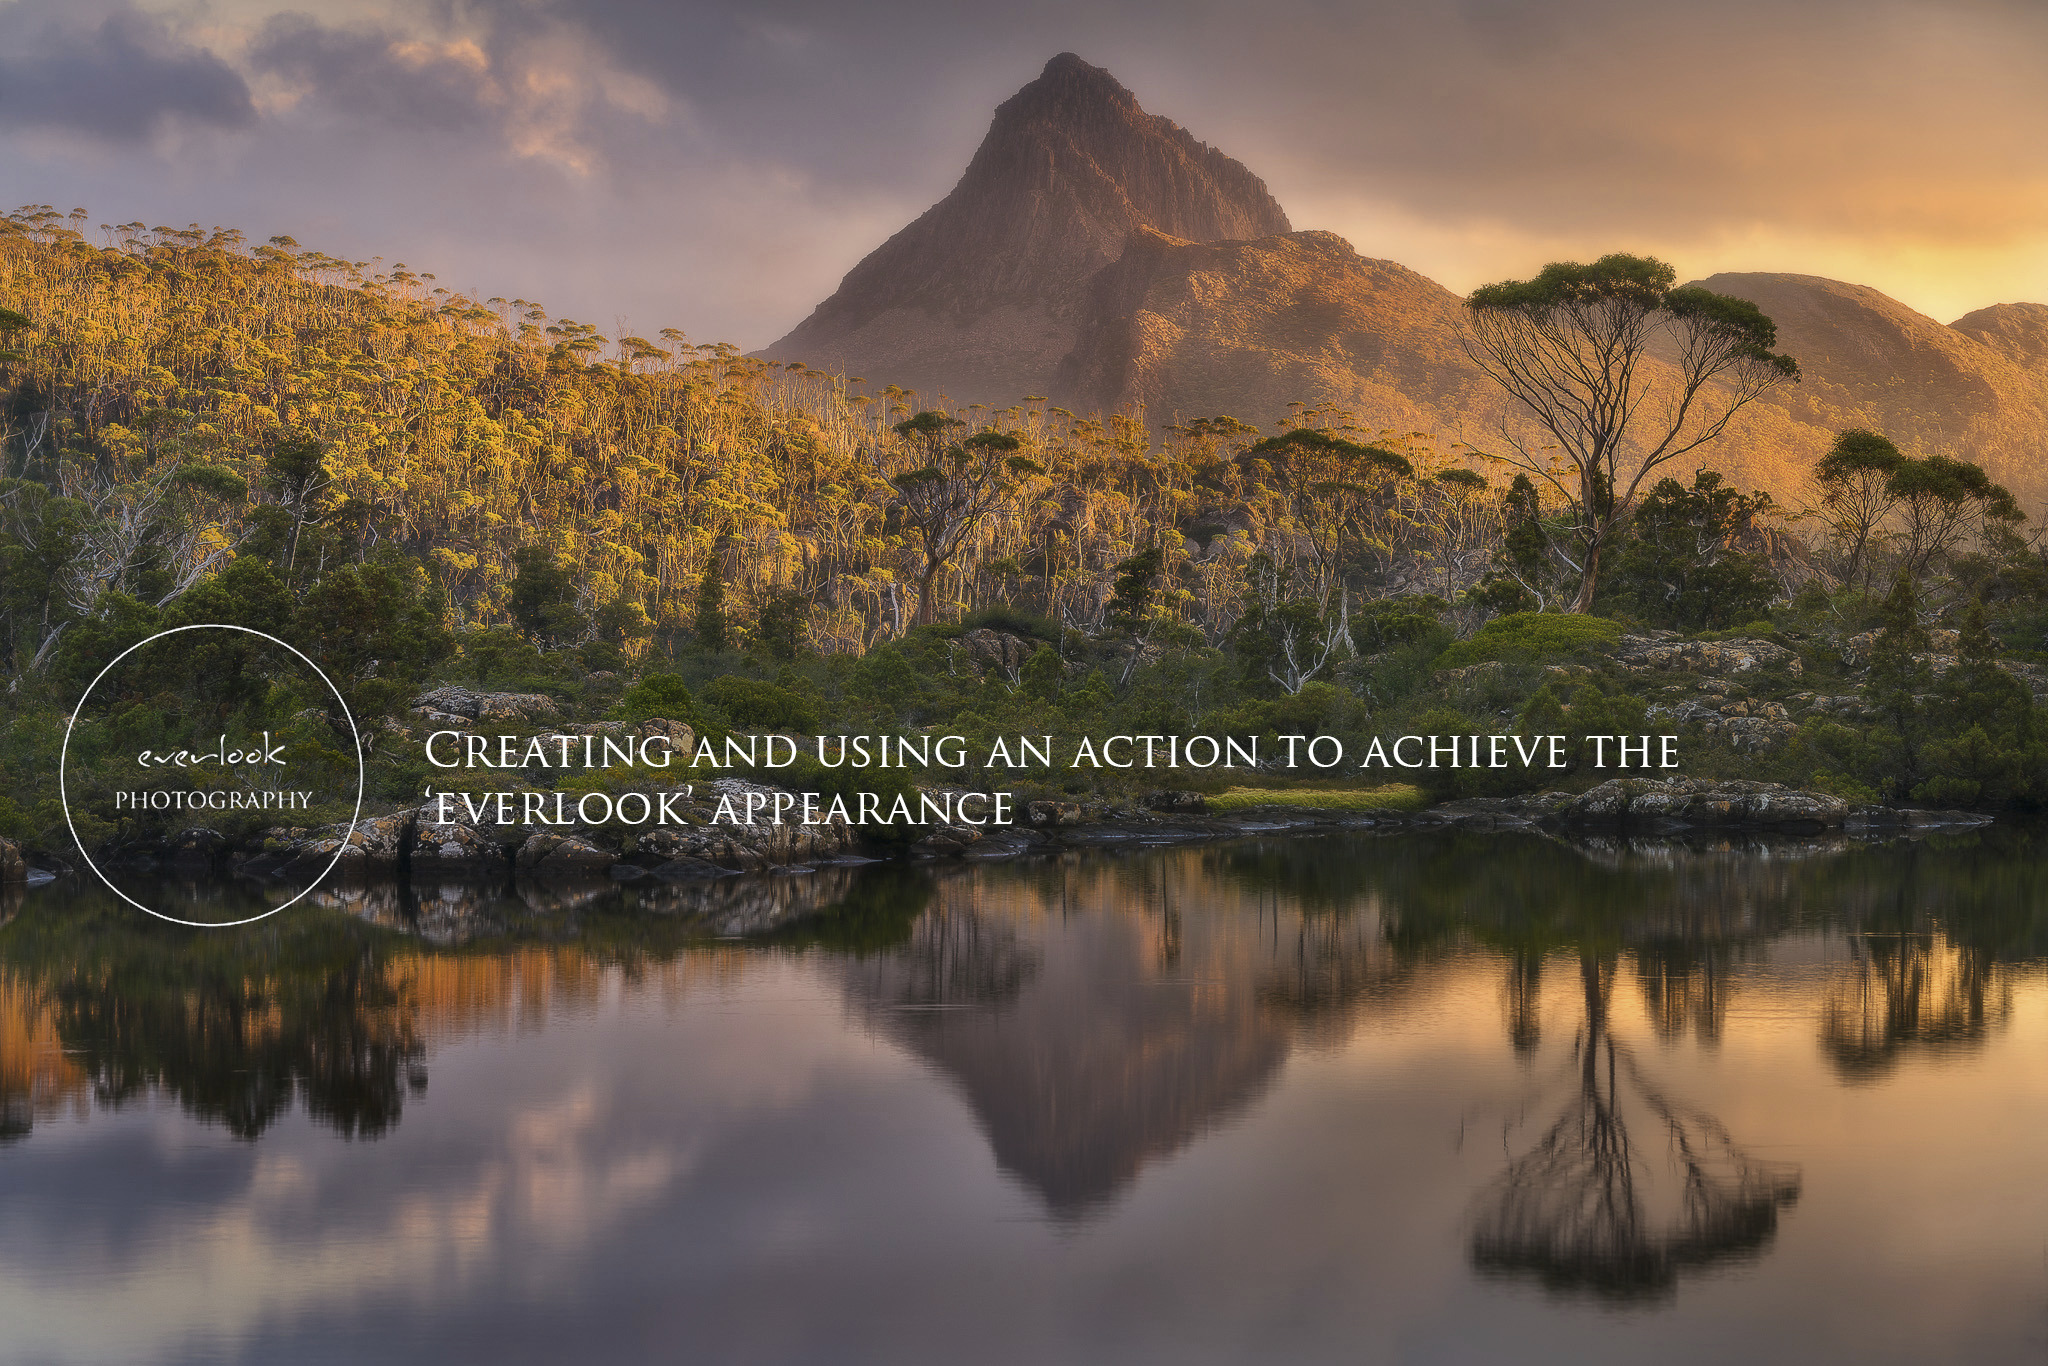 The Everlook Photography Style: How to Achieve It